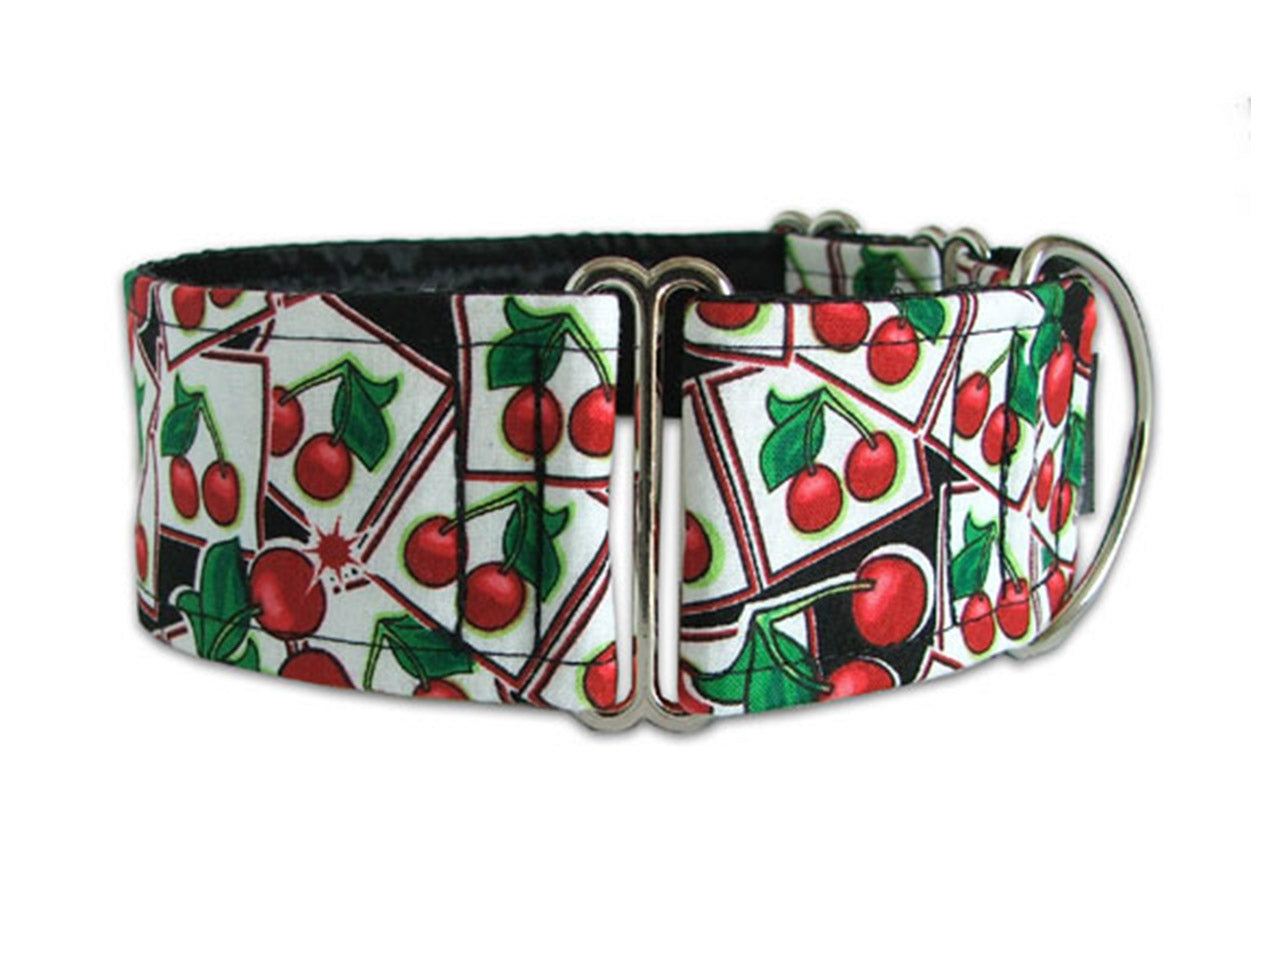 Wearing this lucky cherry collar will make your pooch feel like he's hit the jackpot!